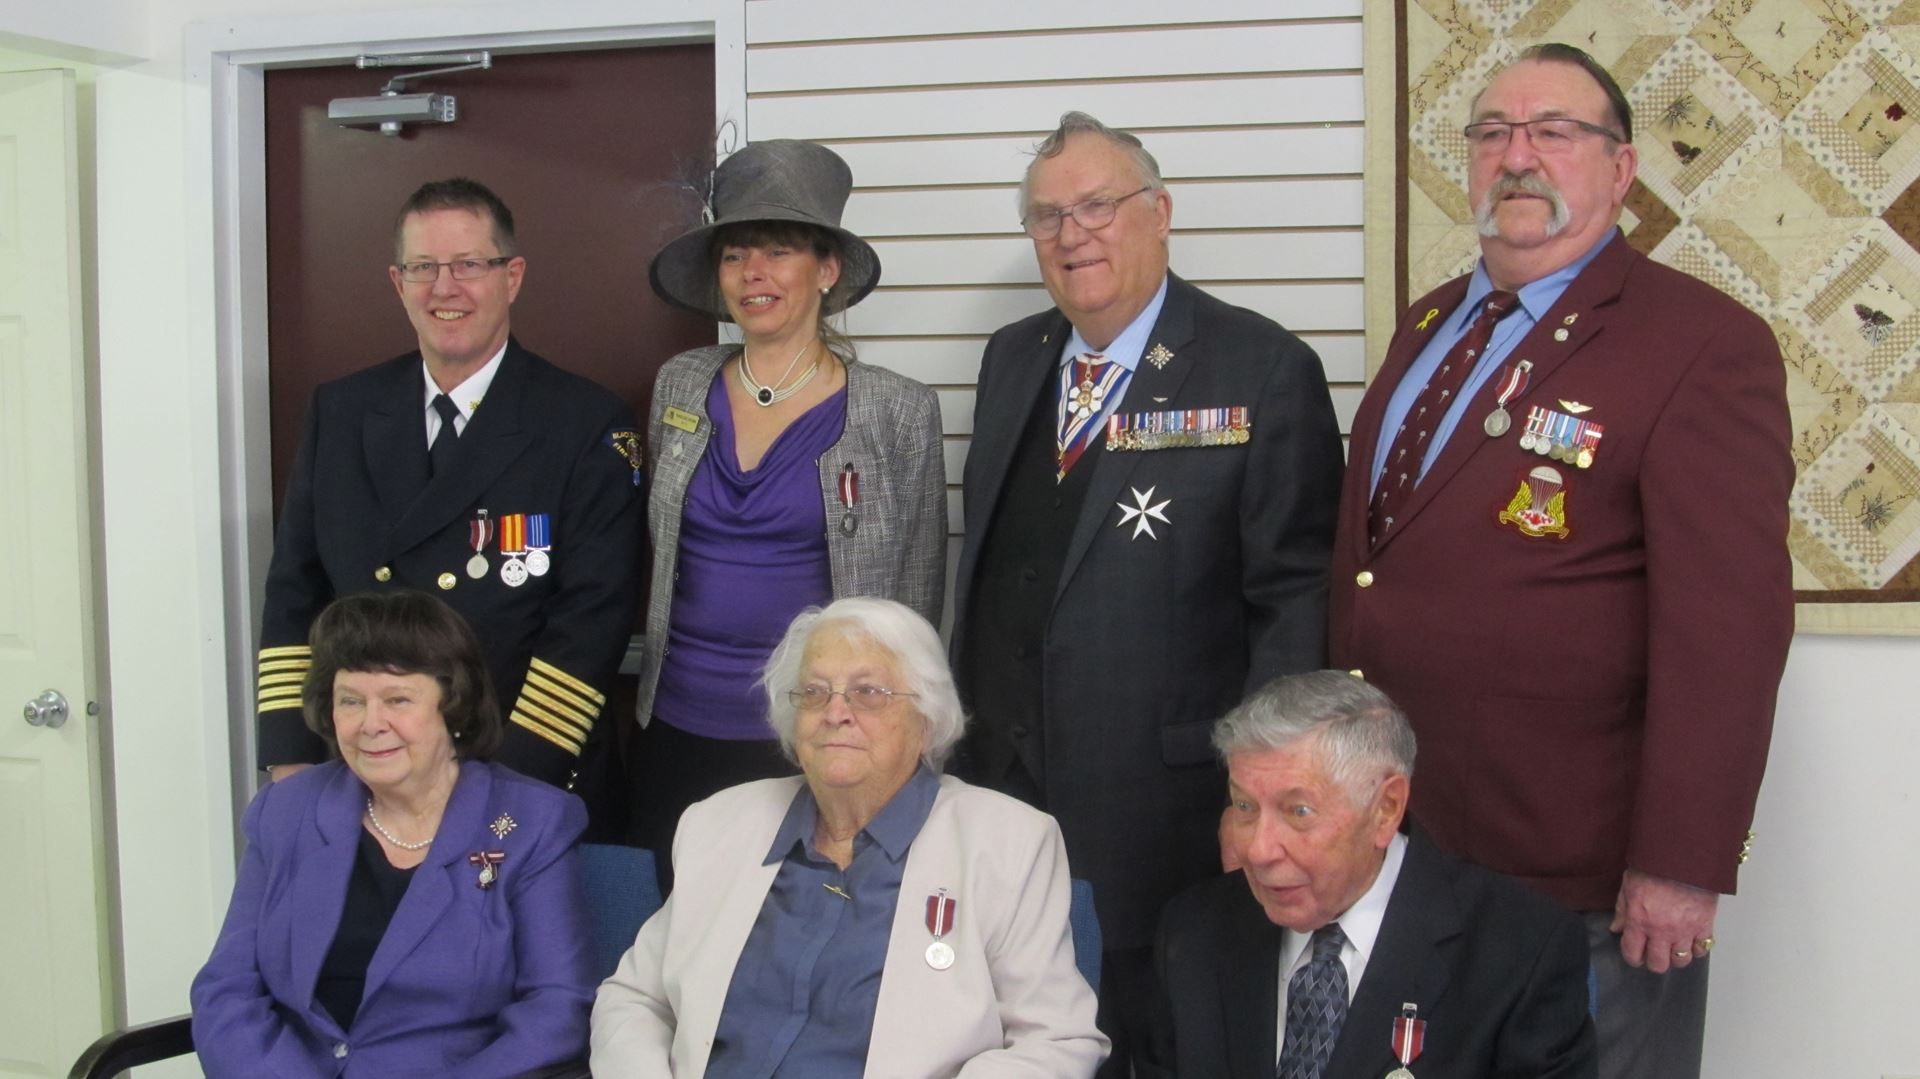 5 Recipients With Their Honours